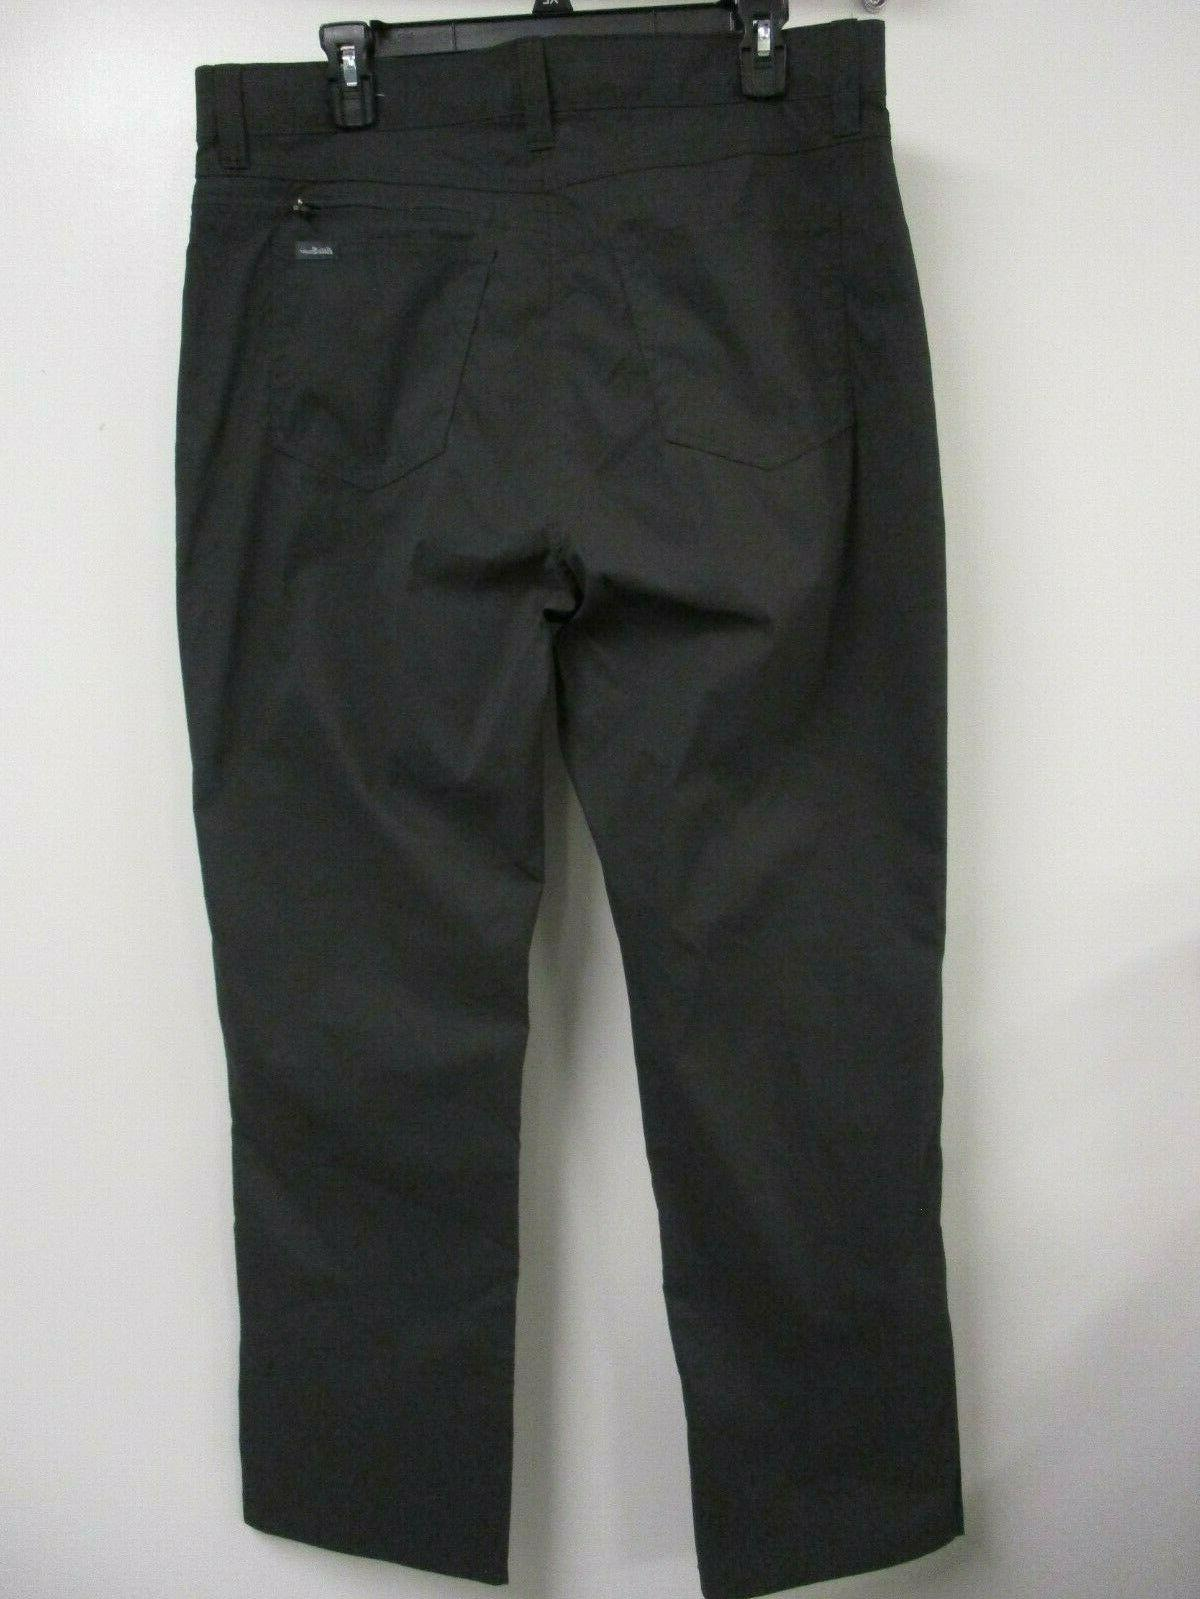 New without Tags- Bauer Adventure Pants X 30 in Gray